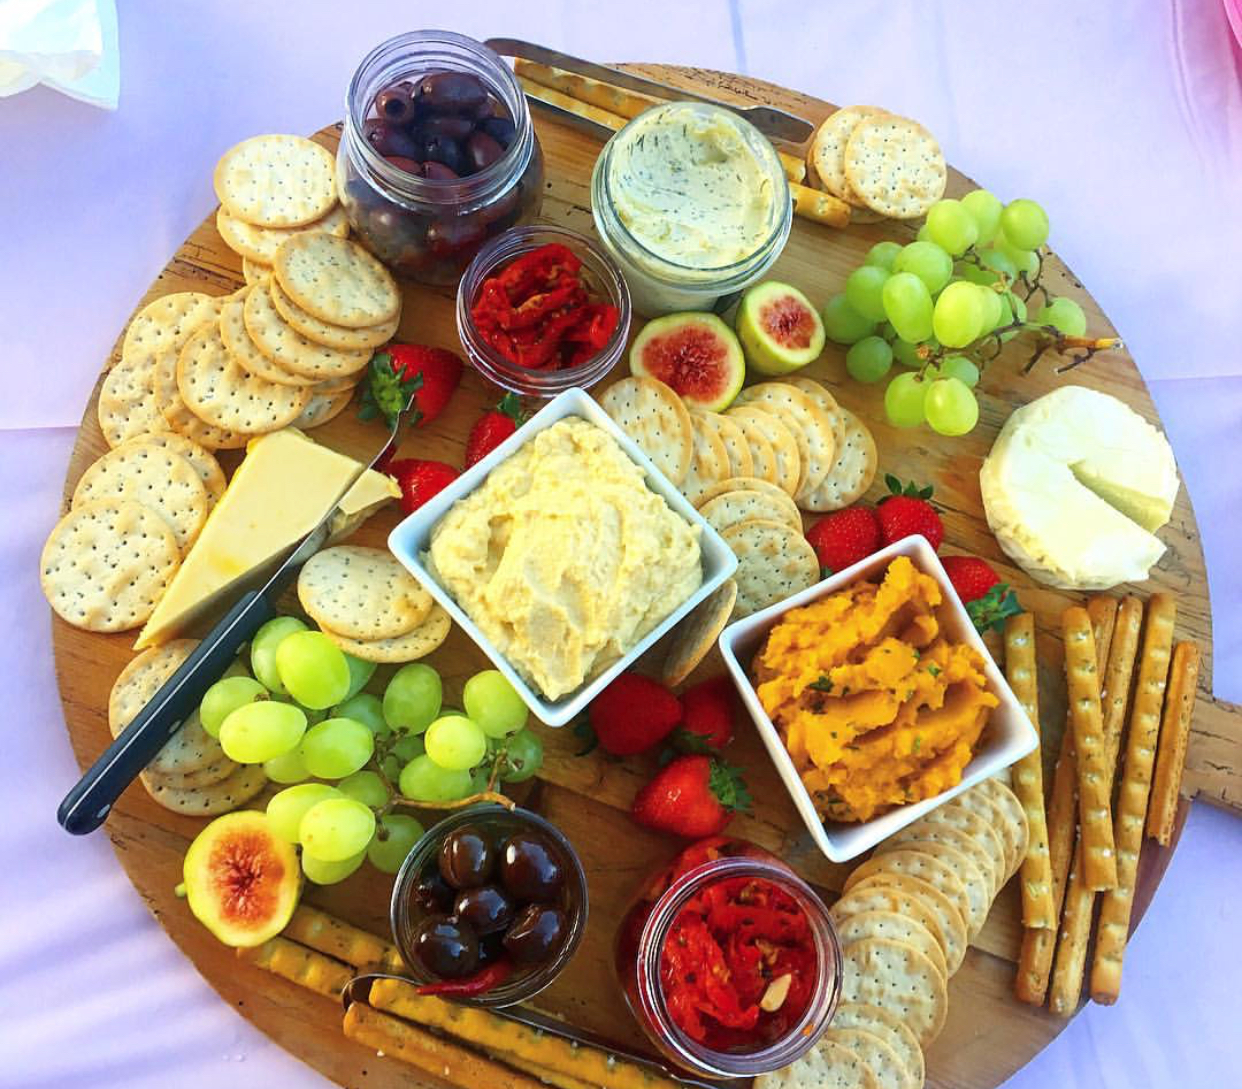 An incredible vegan cheese platter made for my cousins 21st birthday in Australia.